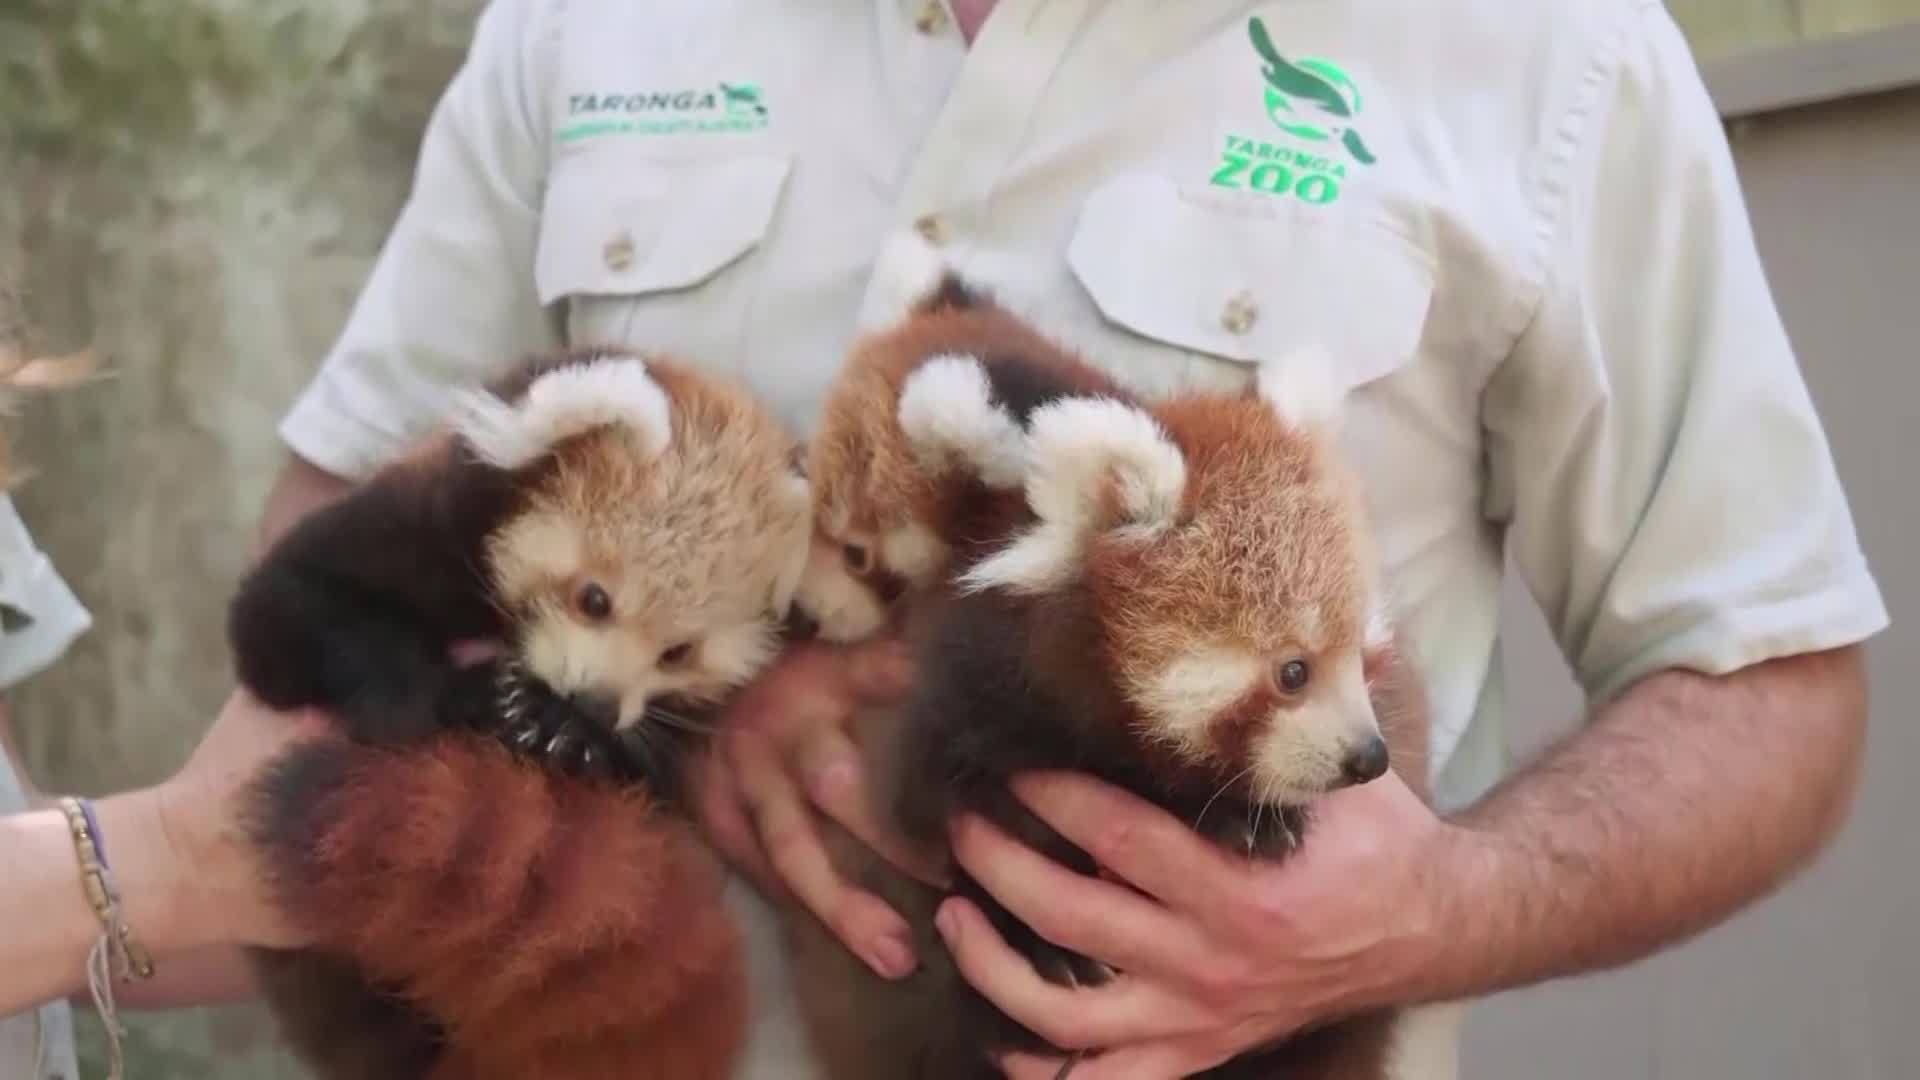 3_Red_Panda_Cubs_Born_in_Australian_Zoo__3_20190310164141